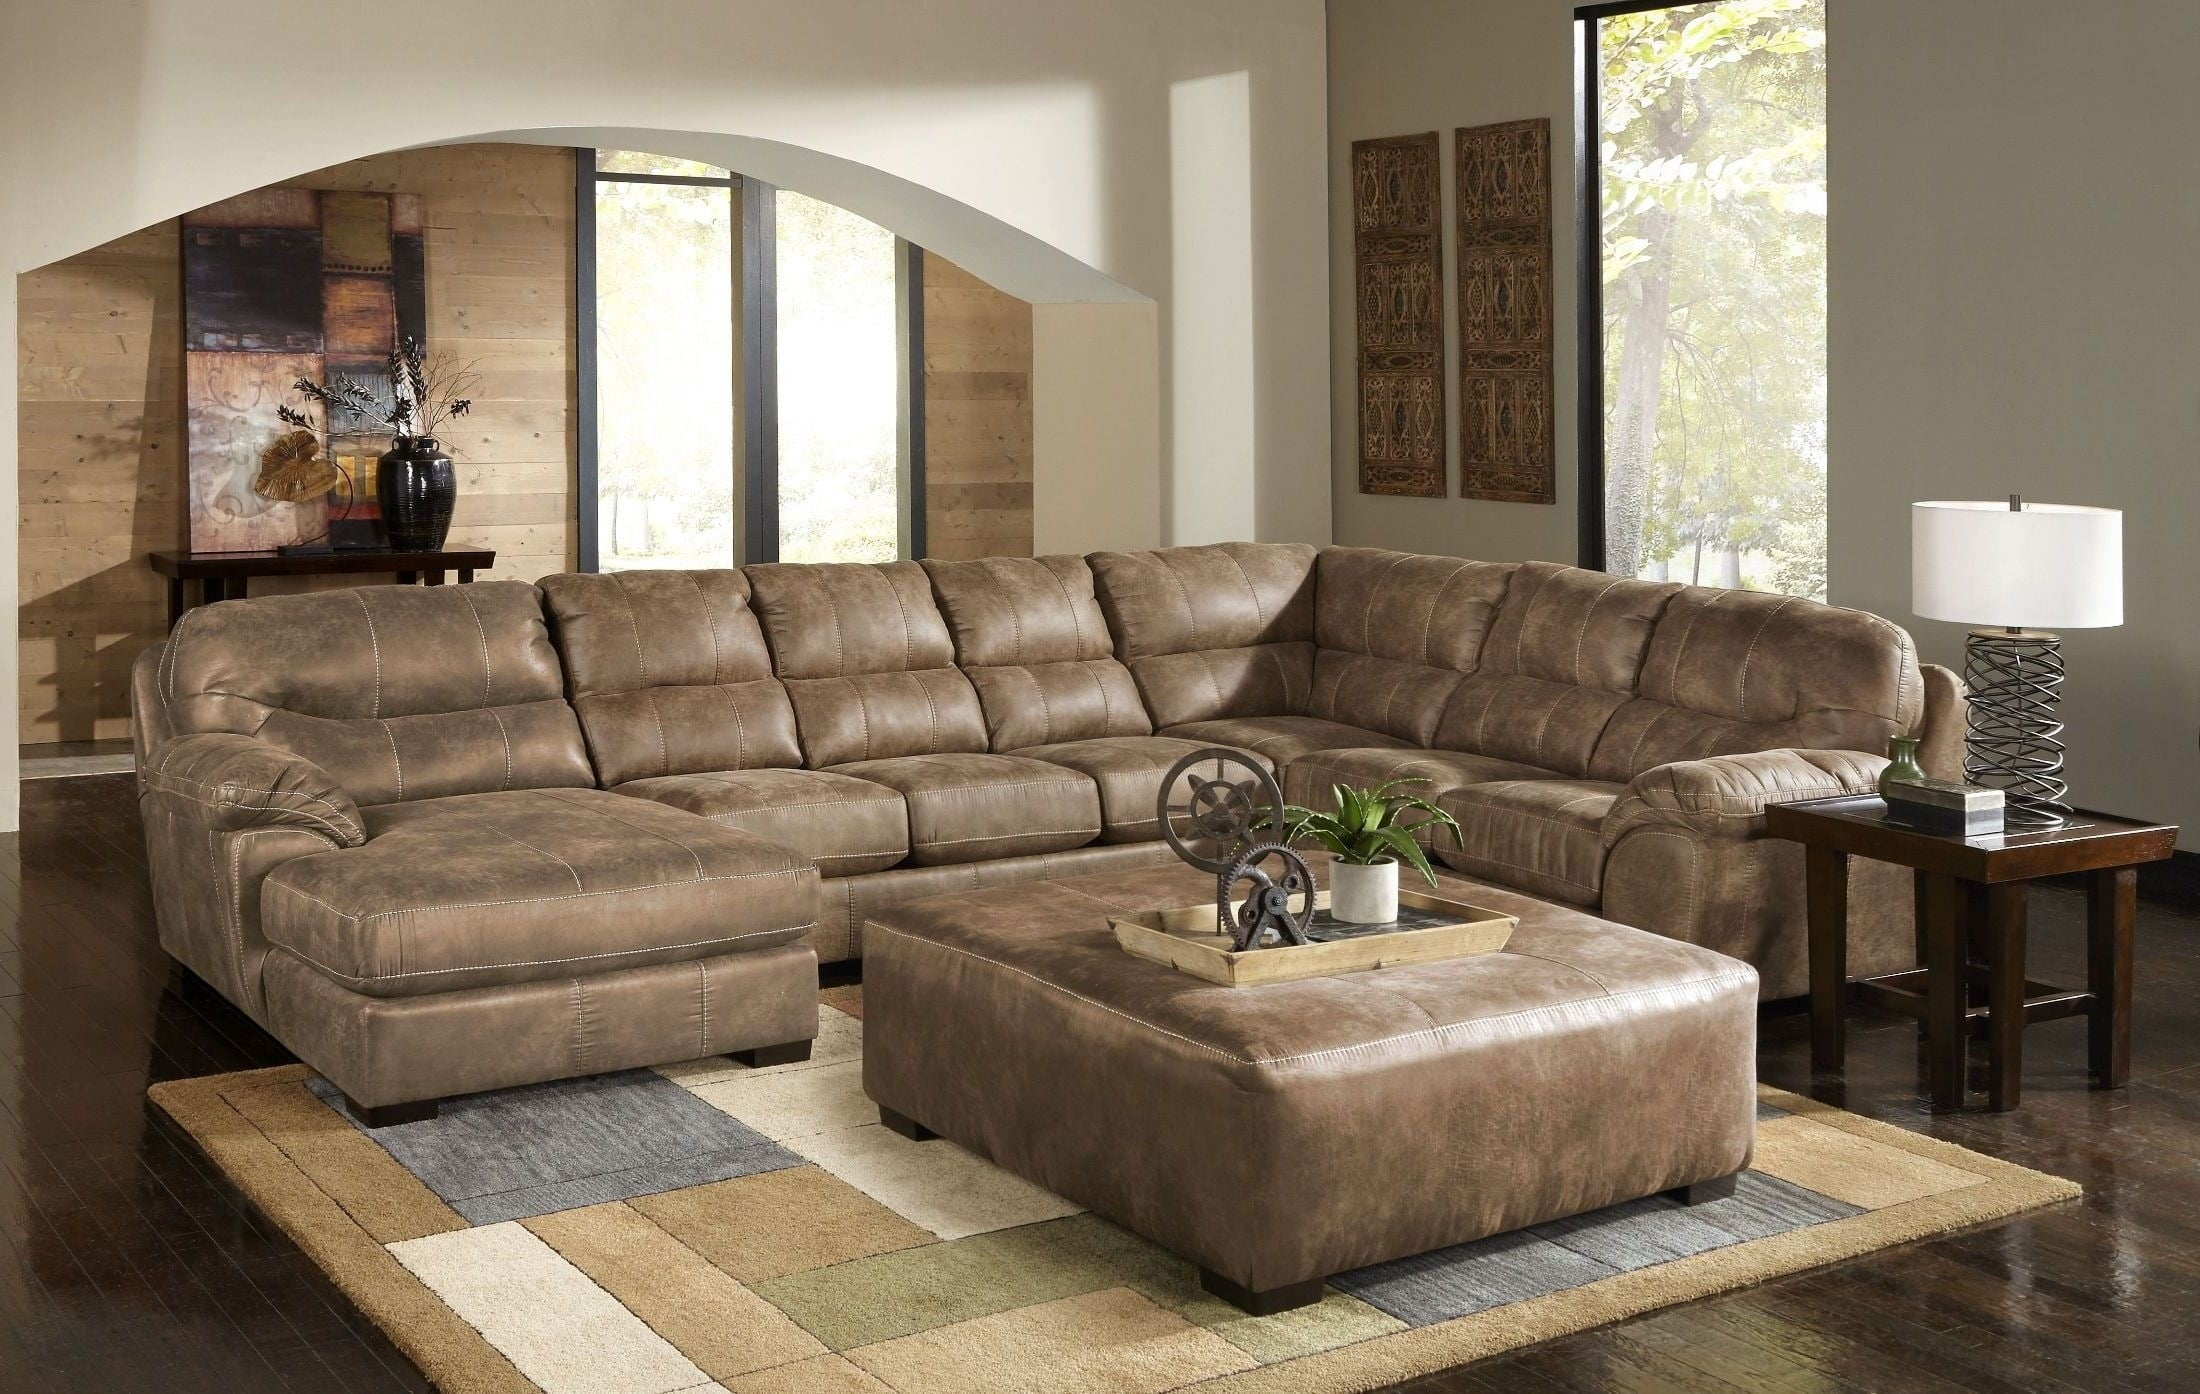 Grant Silt Laf Chaise Sectional, 4453 75 122749302749, Jackson Inside Avery 2 Piece Sectionals With Laf Armless Chaise (Image 16 of 25)